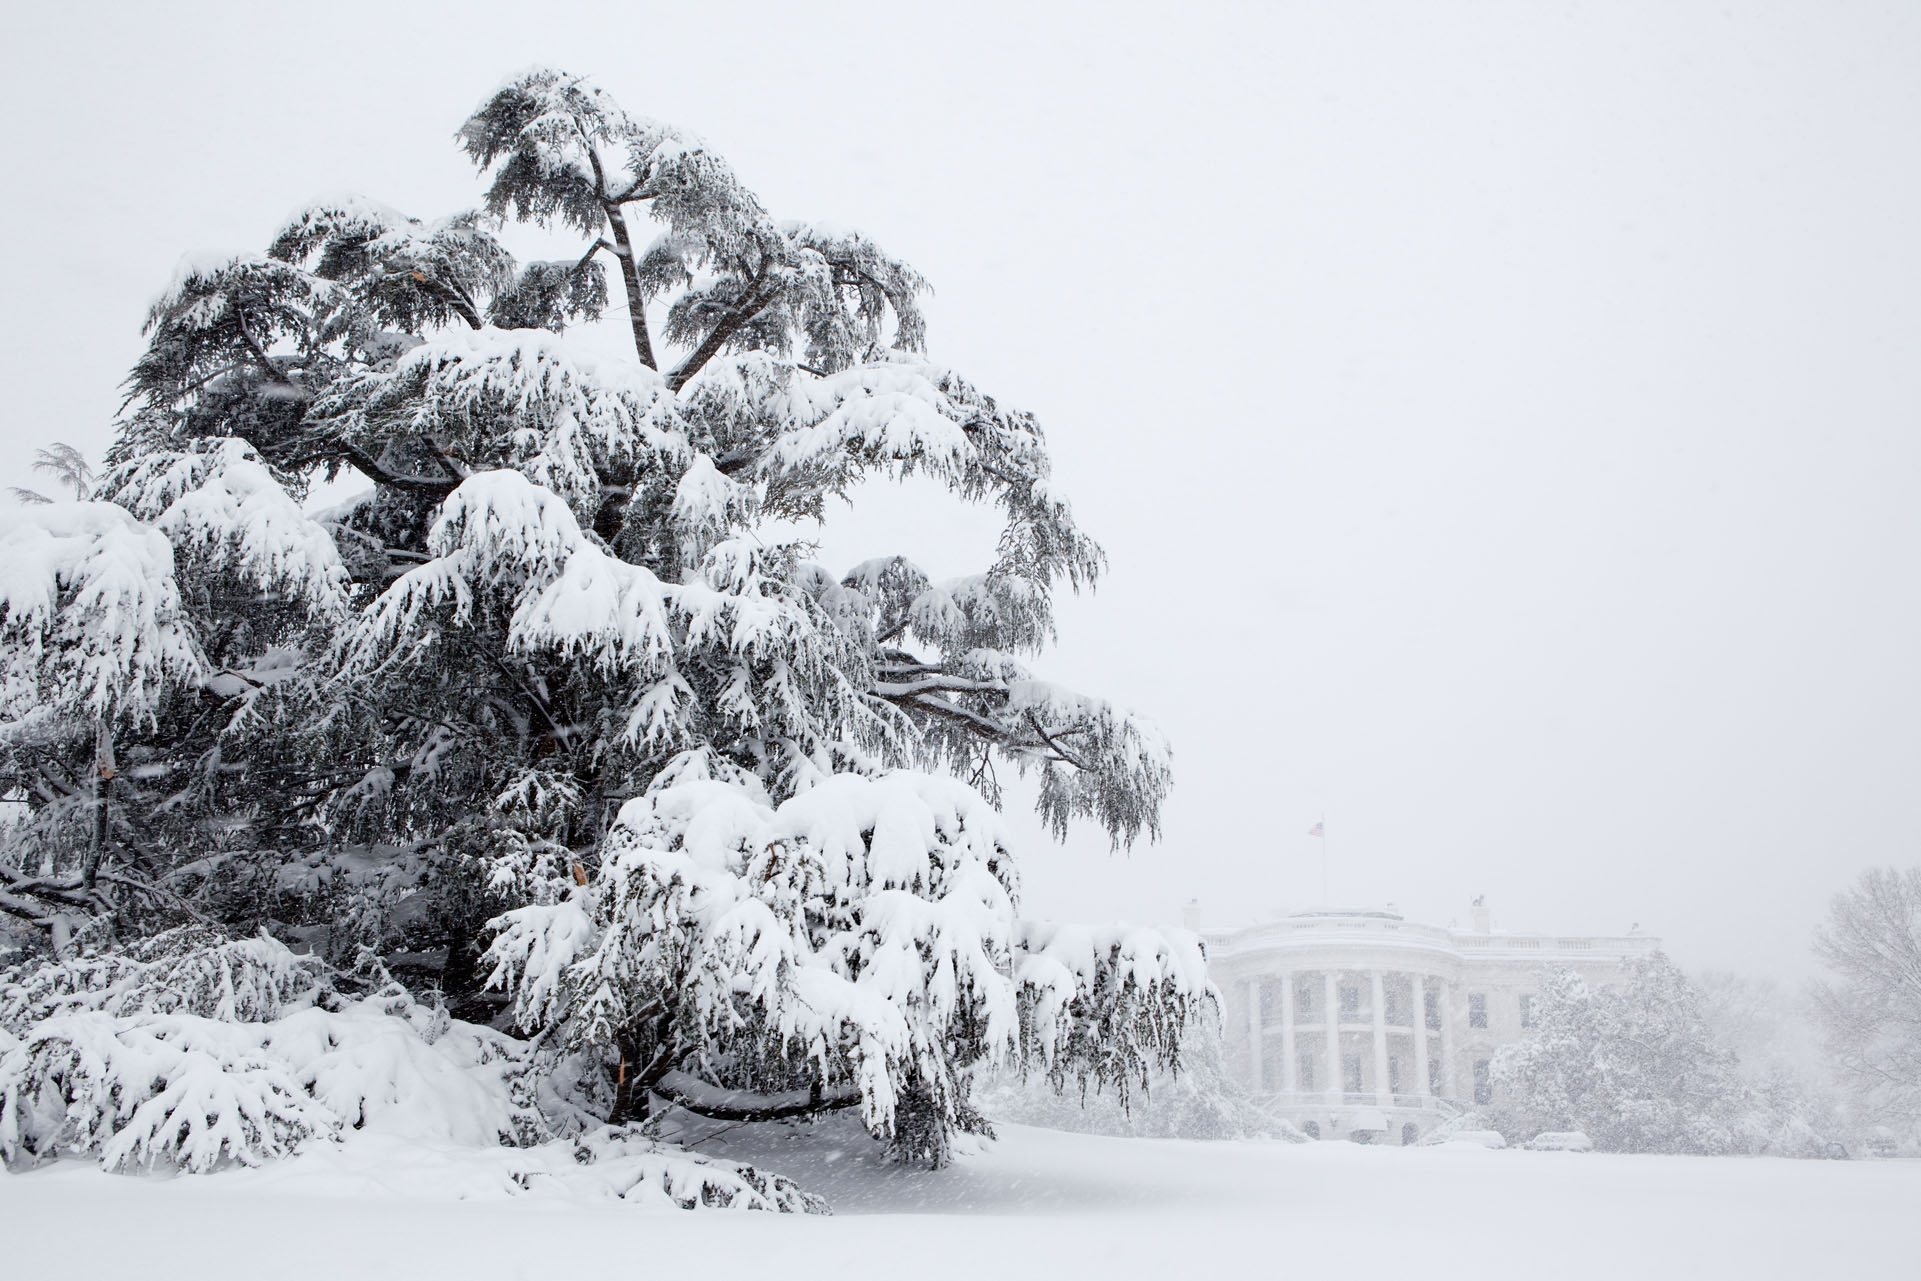 The White House is Blanketed in Snow